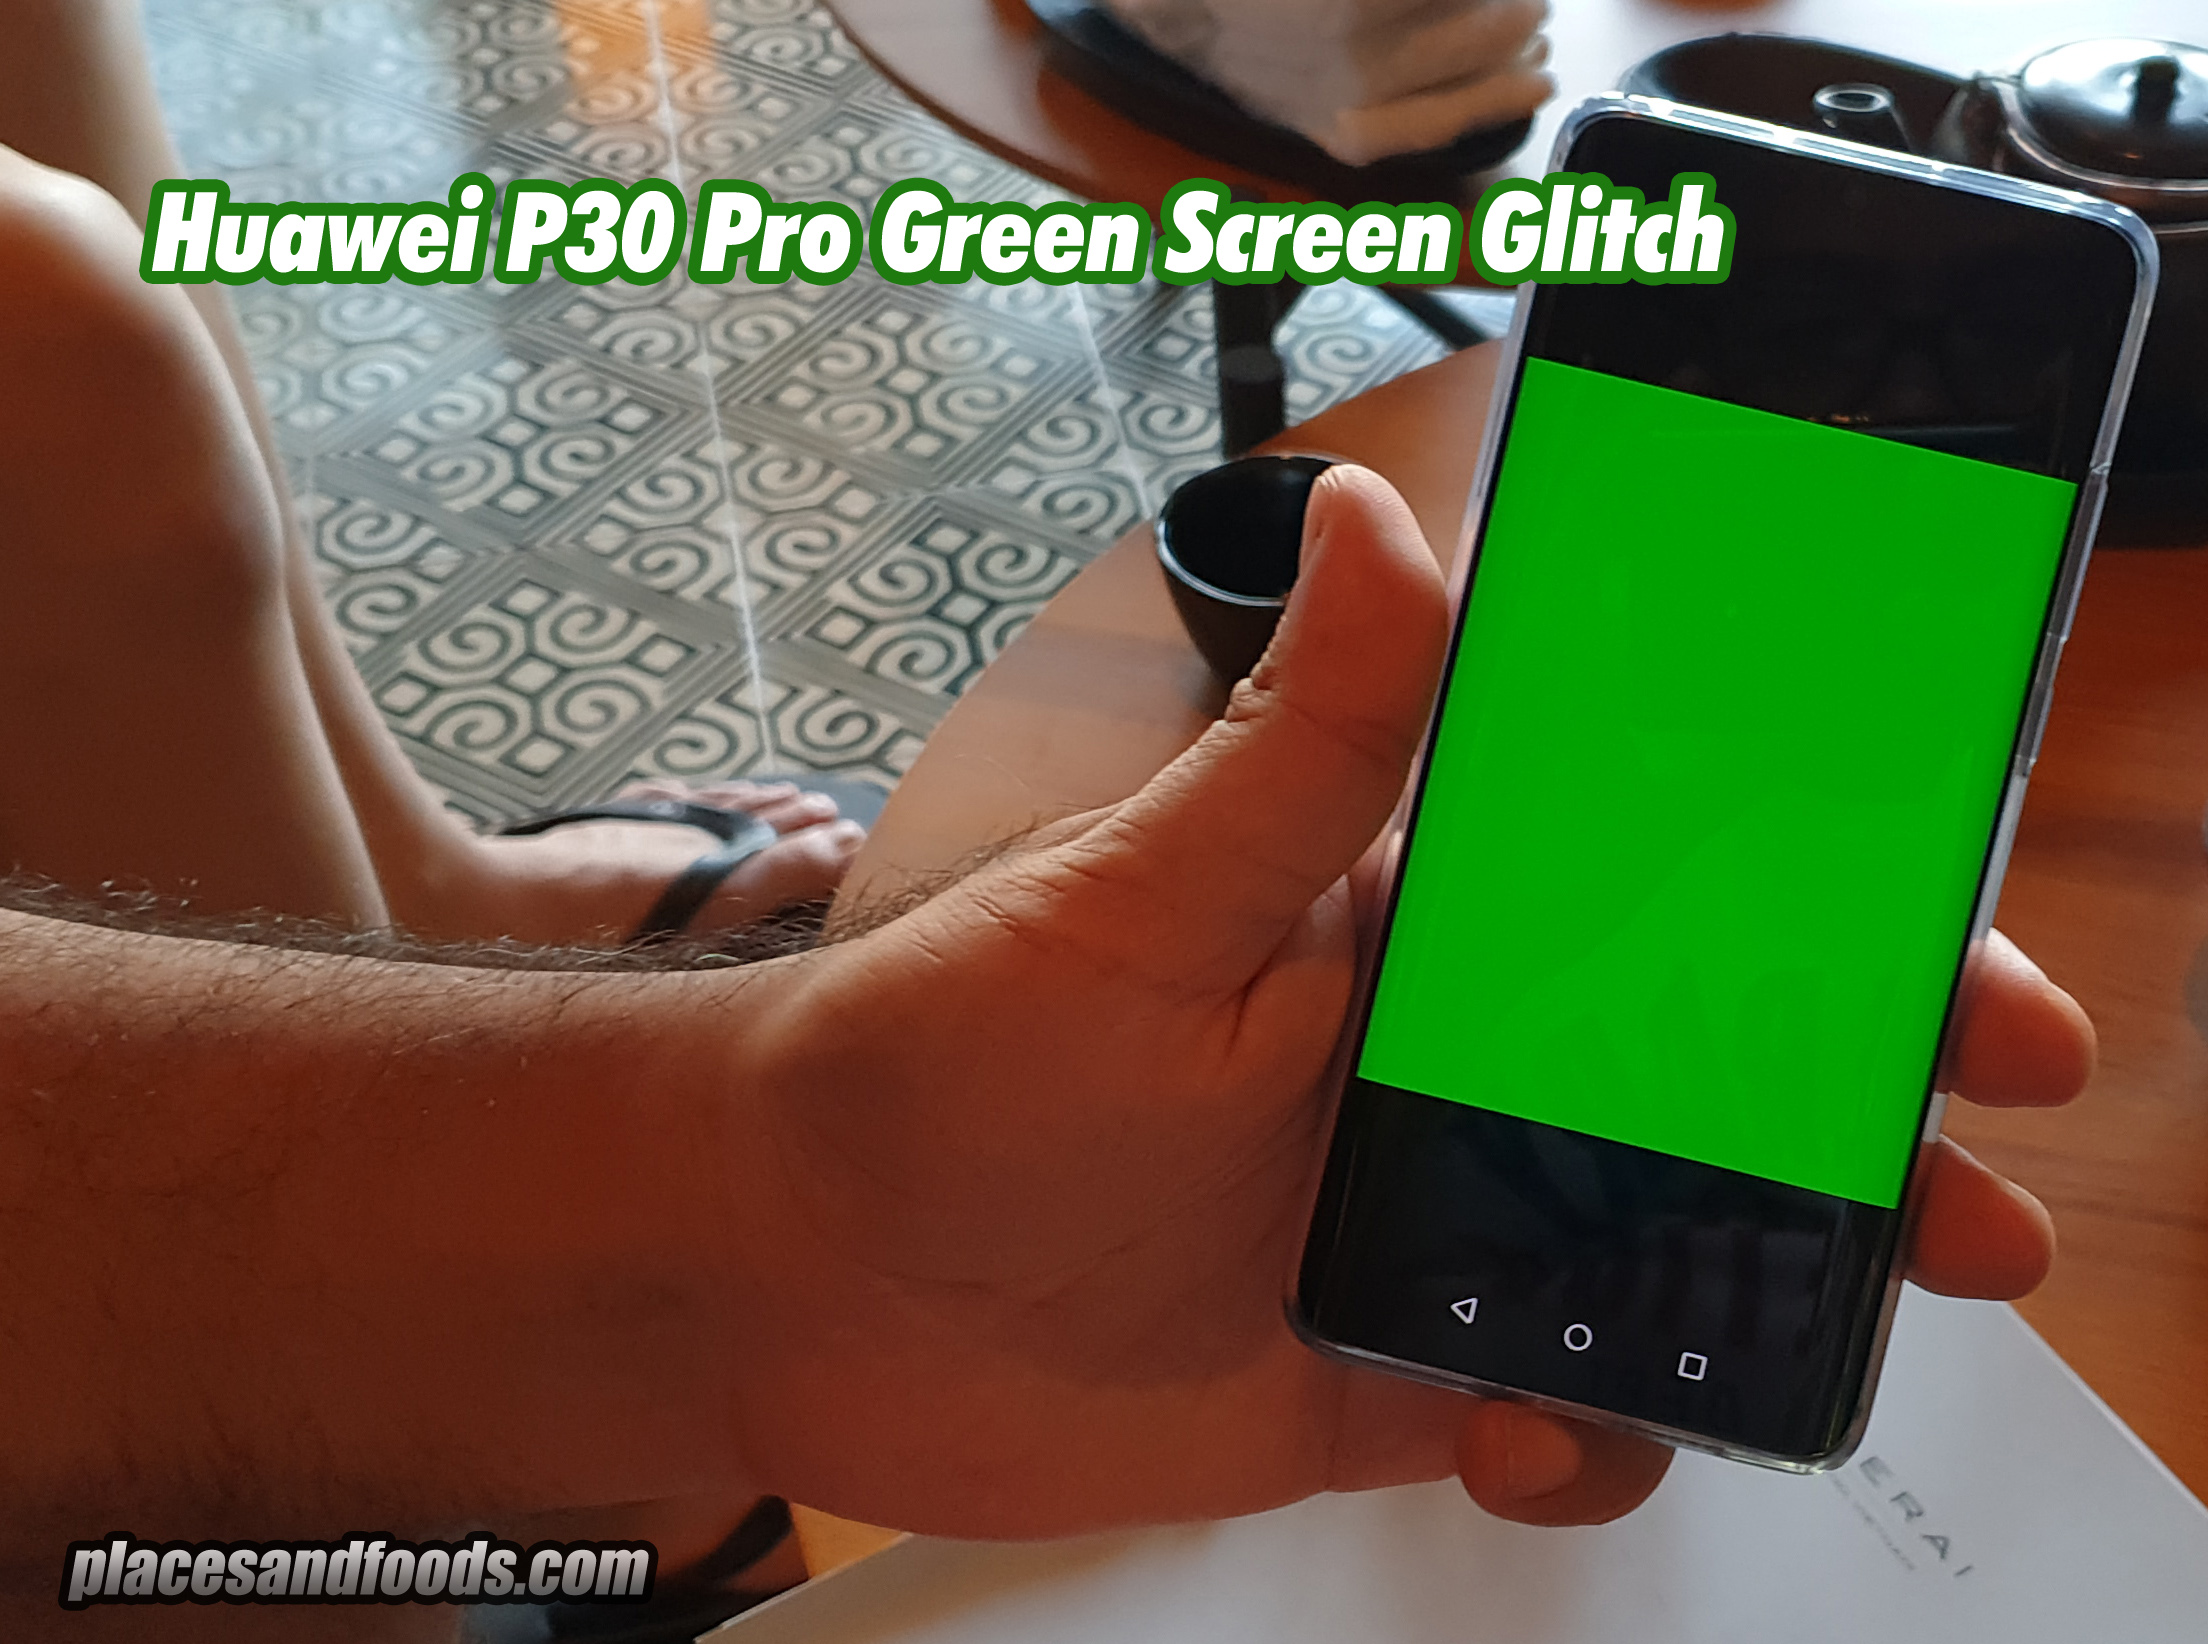 Huawei P30 Pro Green Screen Glitch